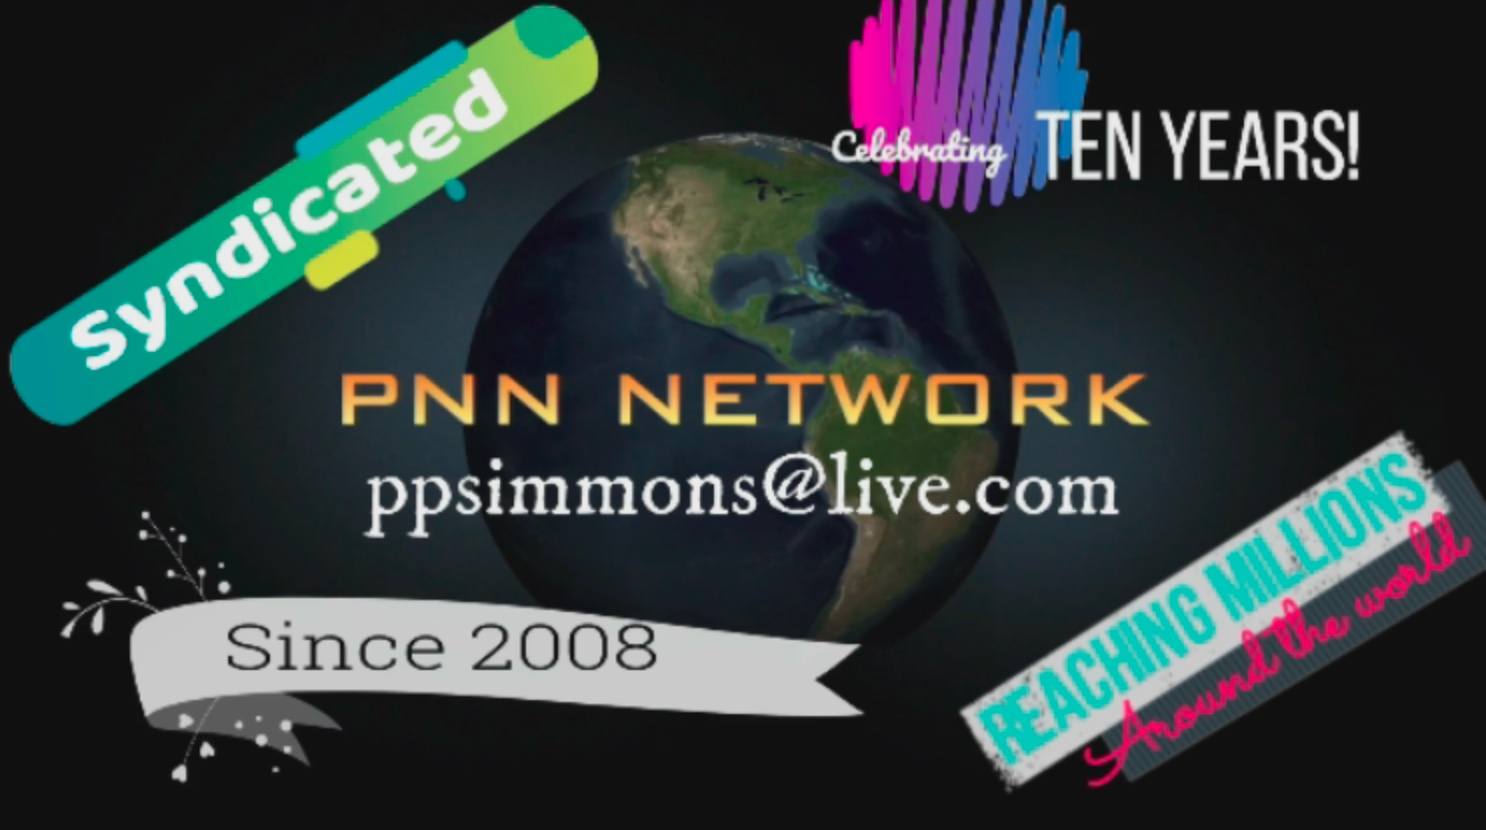 Pnn ppsimmons news and ministry network obamas hawaii birth pnn ppsimmons news and ministry network aiddatafo Image collections